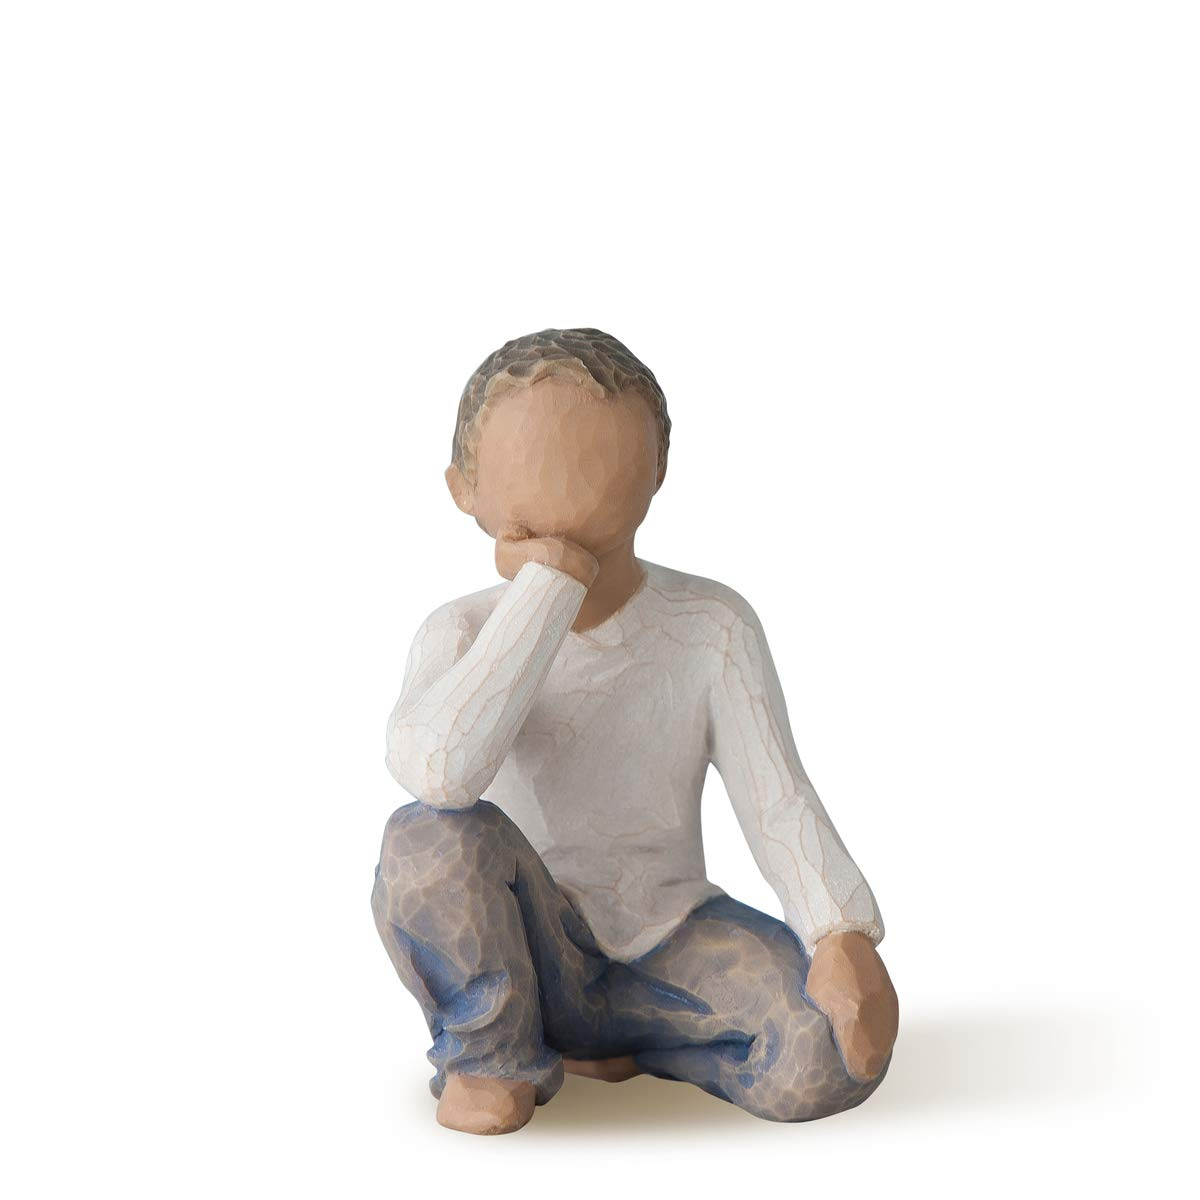 Willow Tree Inquisitive Child (Darker Skin Tone & Hair Color), Sculpted Hand-Painted Figure